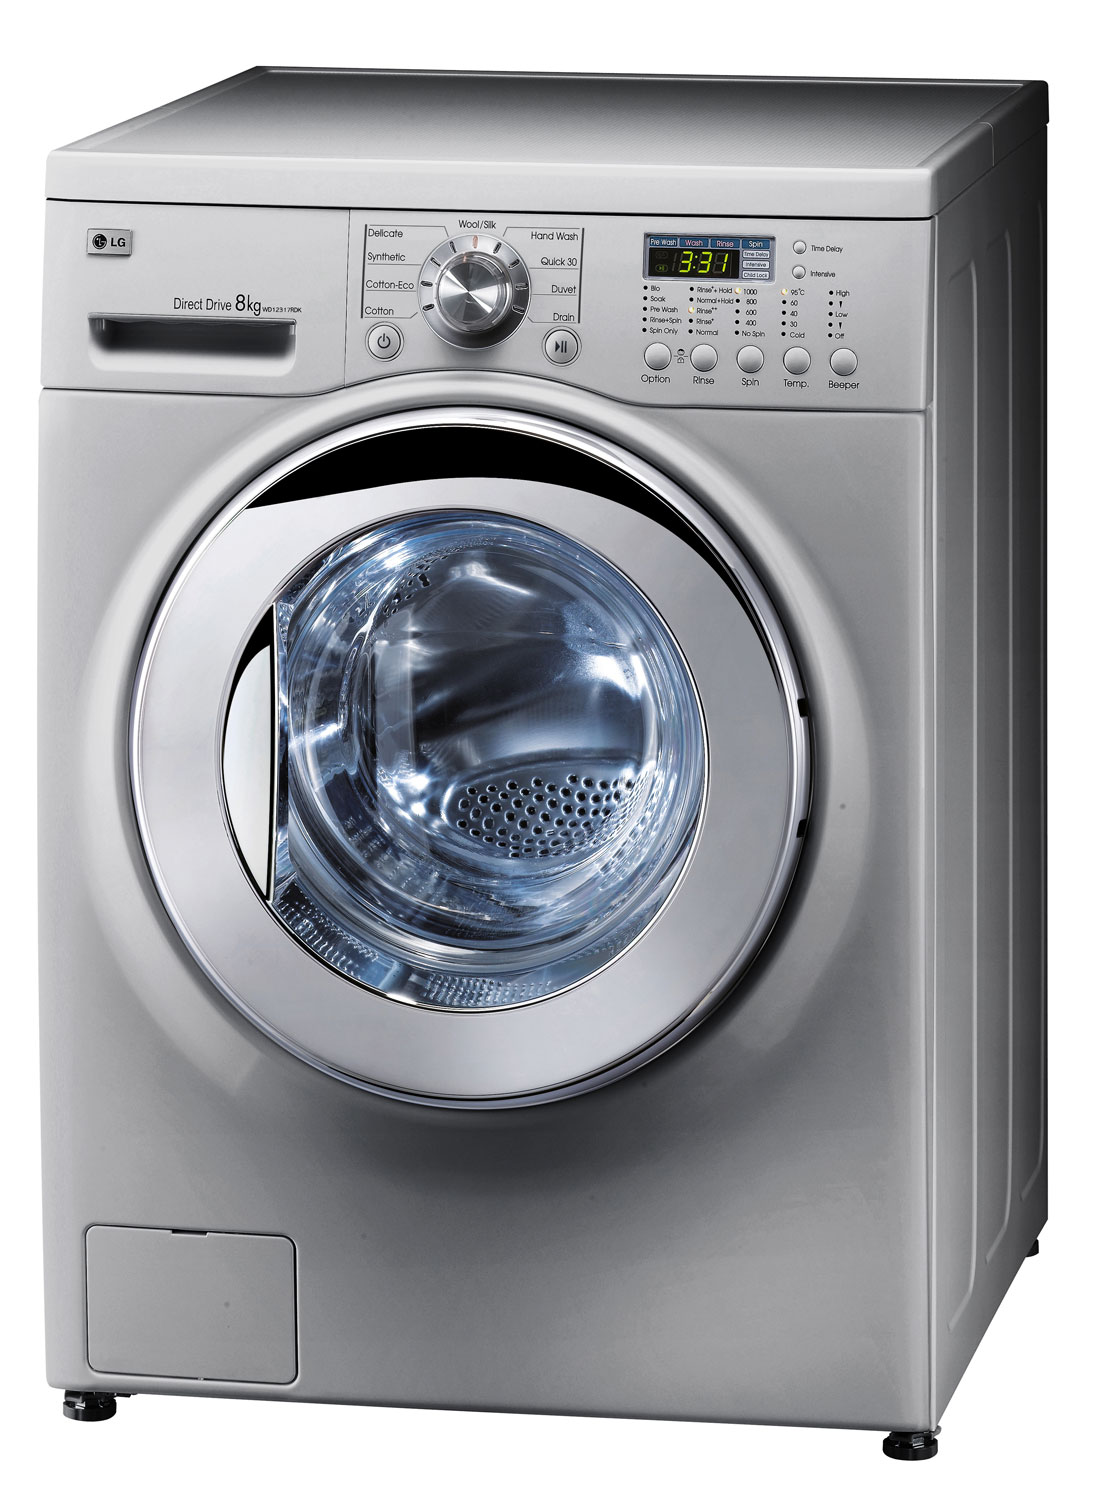 http://4.bp.blogspot.com/-AW3QPhl0i-w/TaehrcwJpnI/AAAAAAAAAJA/-cST-zkNl_A/s1600/lg-wd12317rdk-direct-drive-washing-drying-machine-18930704.jpeg